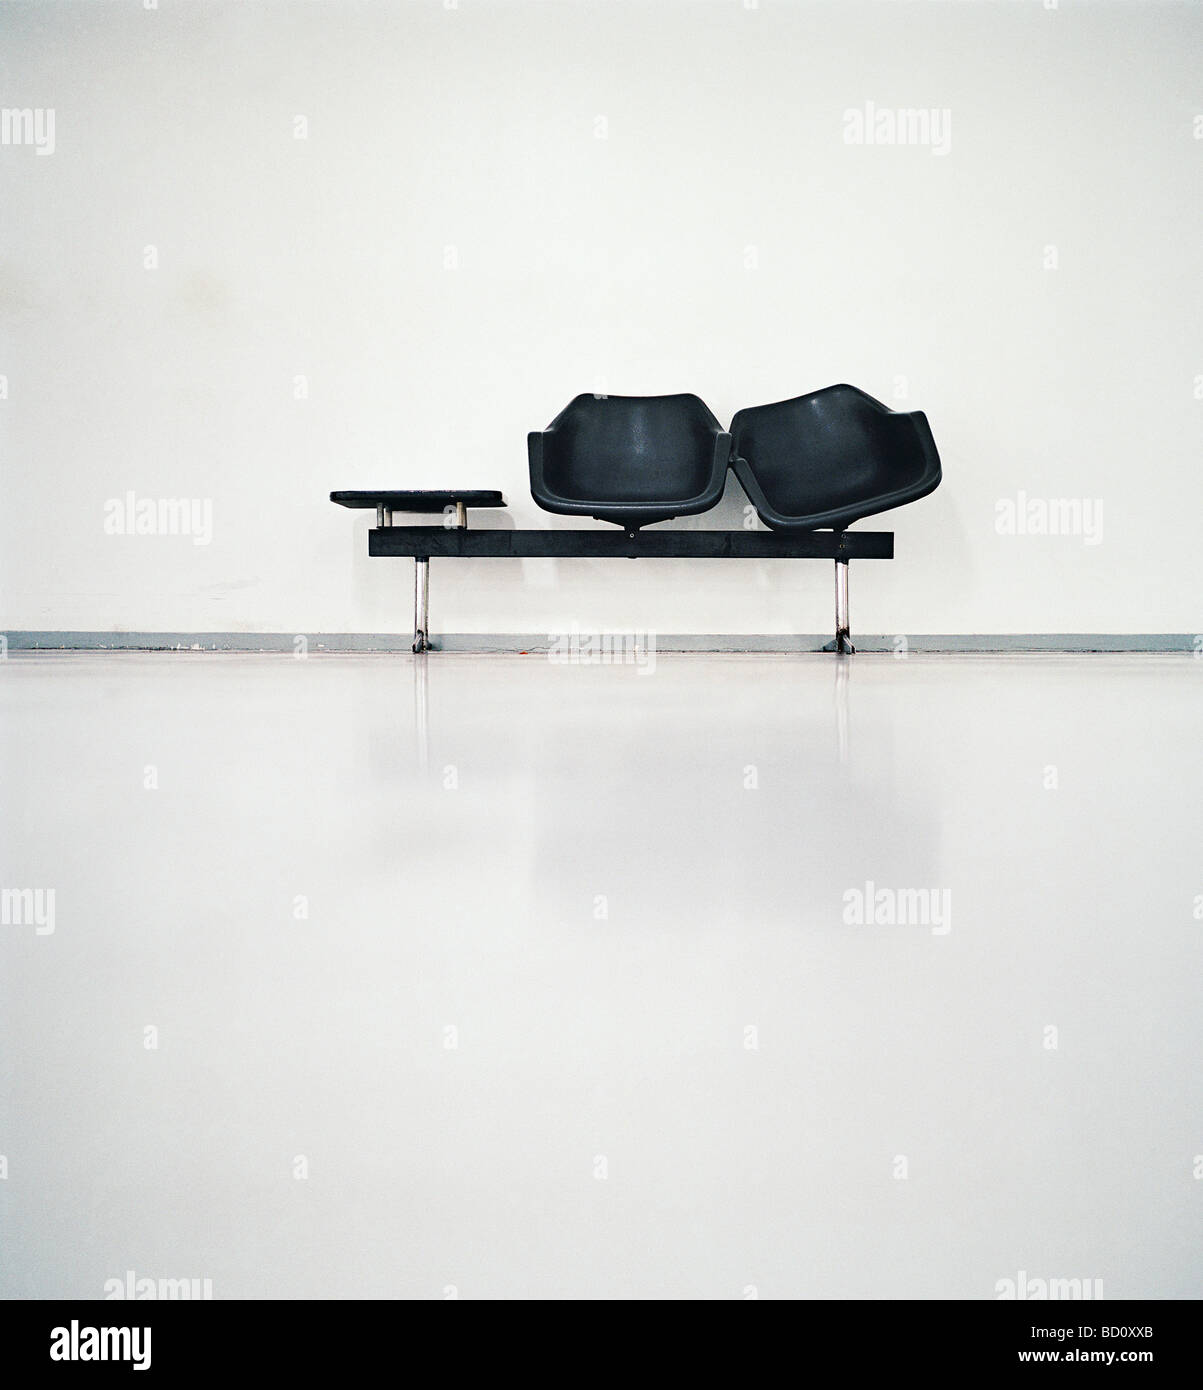 two black seats in an airport - Stock Image